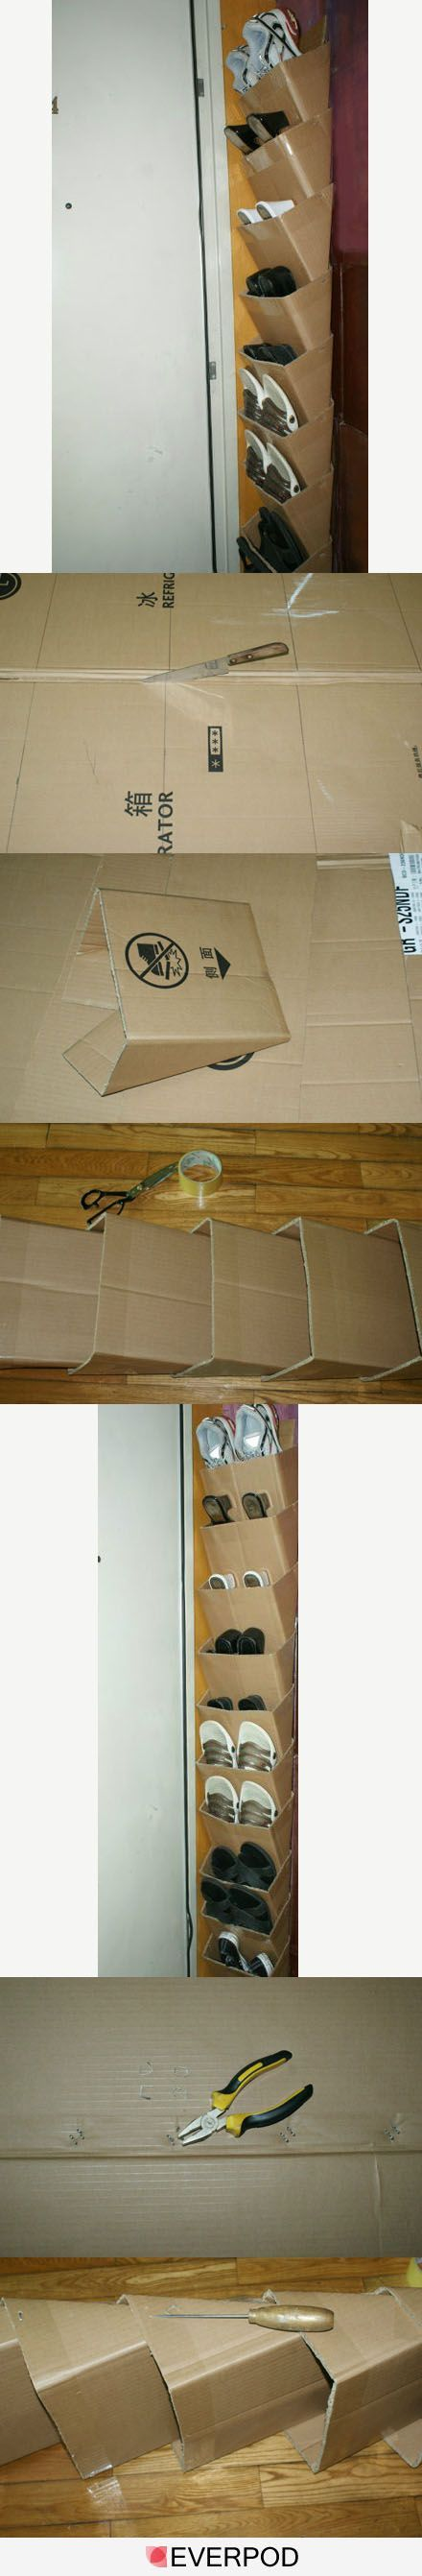 #DIY #Shoe #Organizer Pictures, Photos, and Images for Facebook, Tumblr, Pinterest, and Twitter